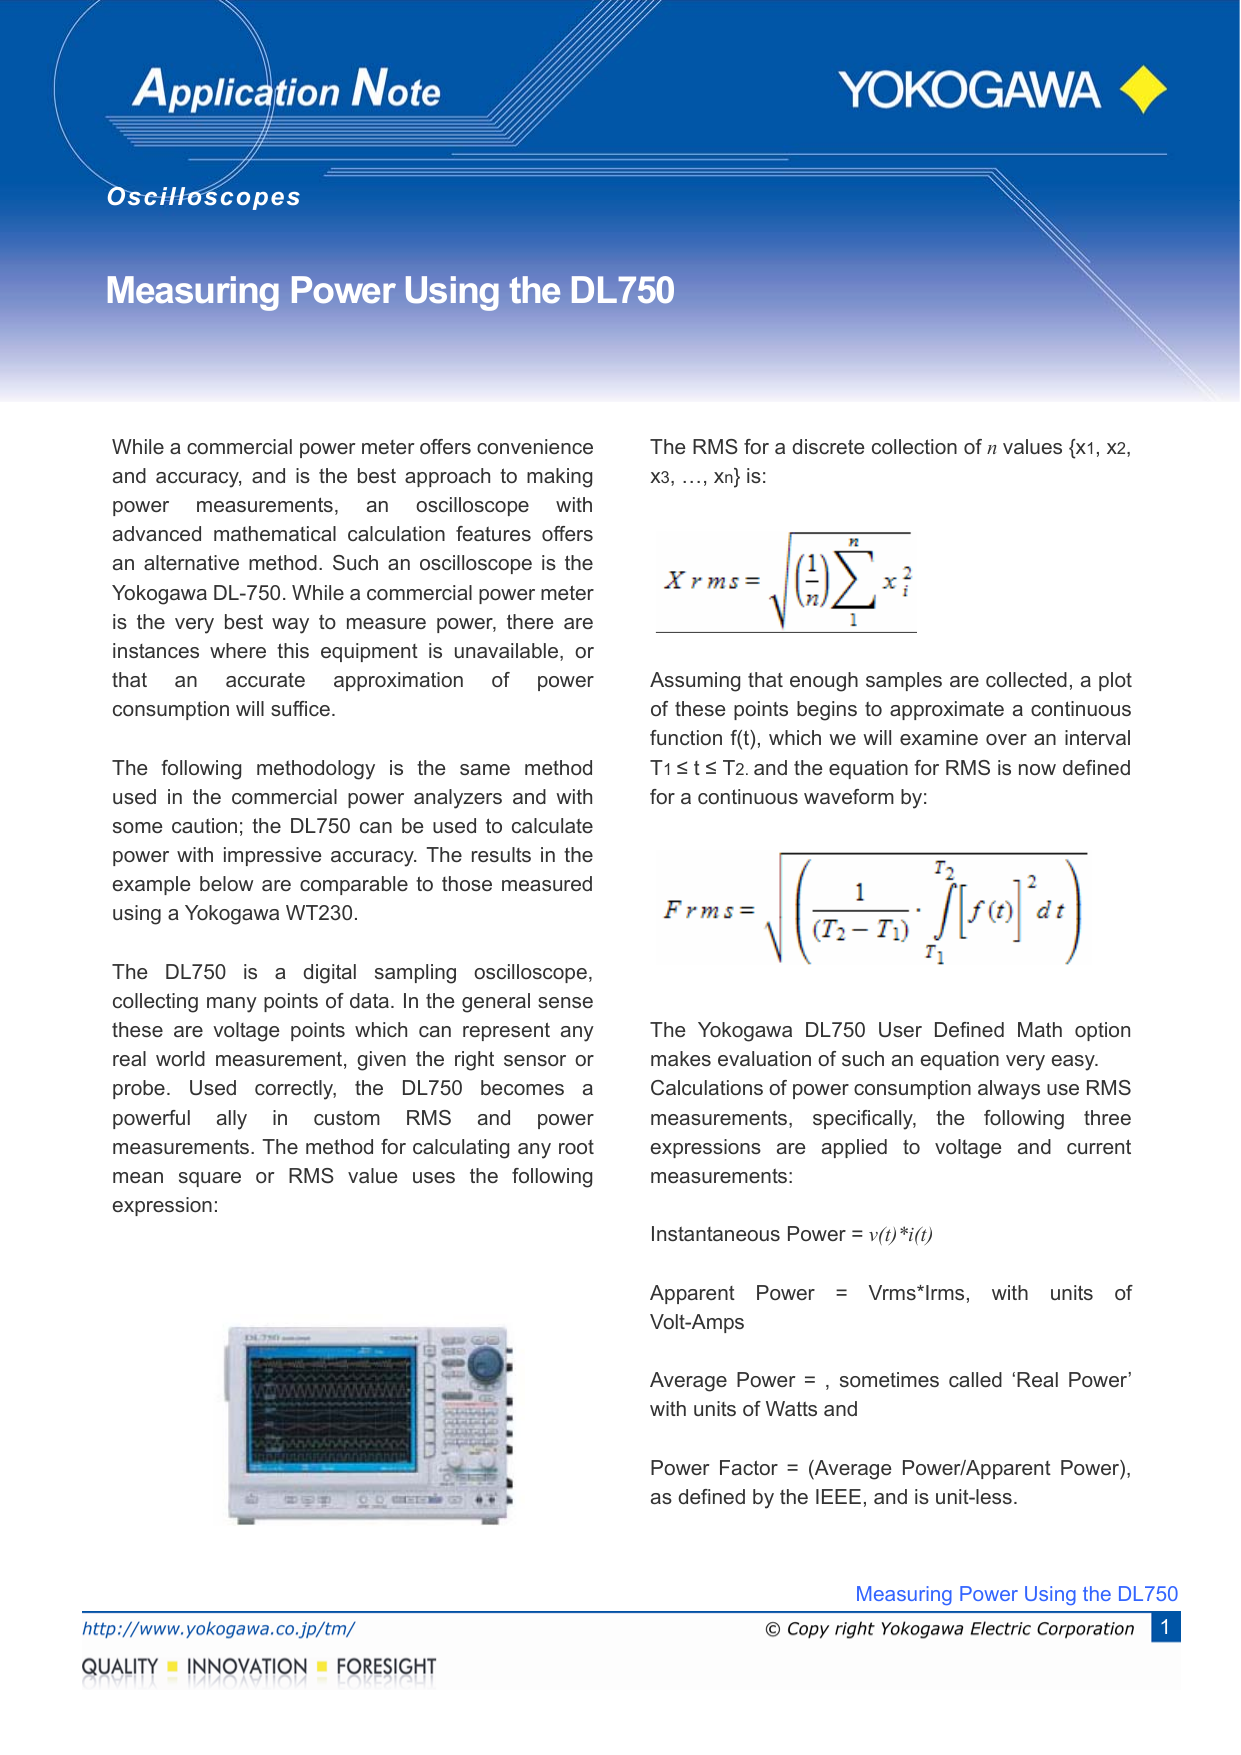 Measuring Power Using the DL750